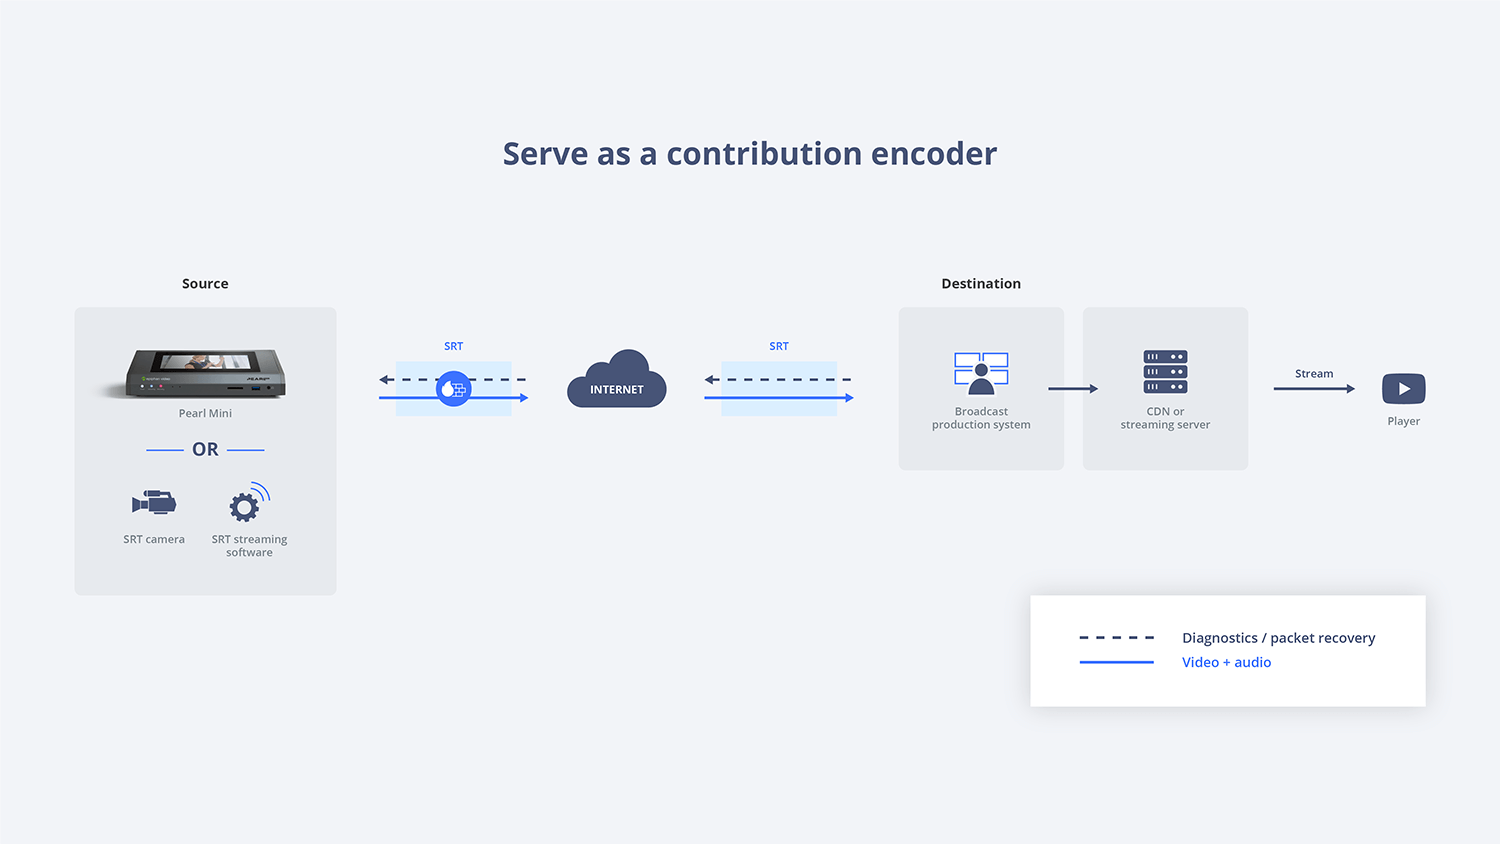 Serve as a contribution encoder